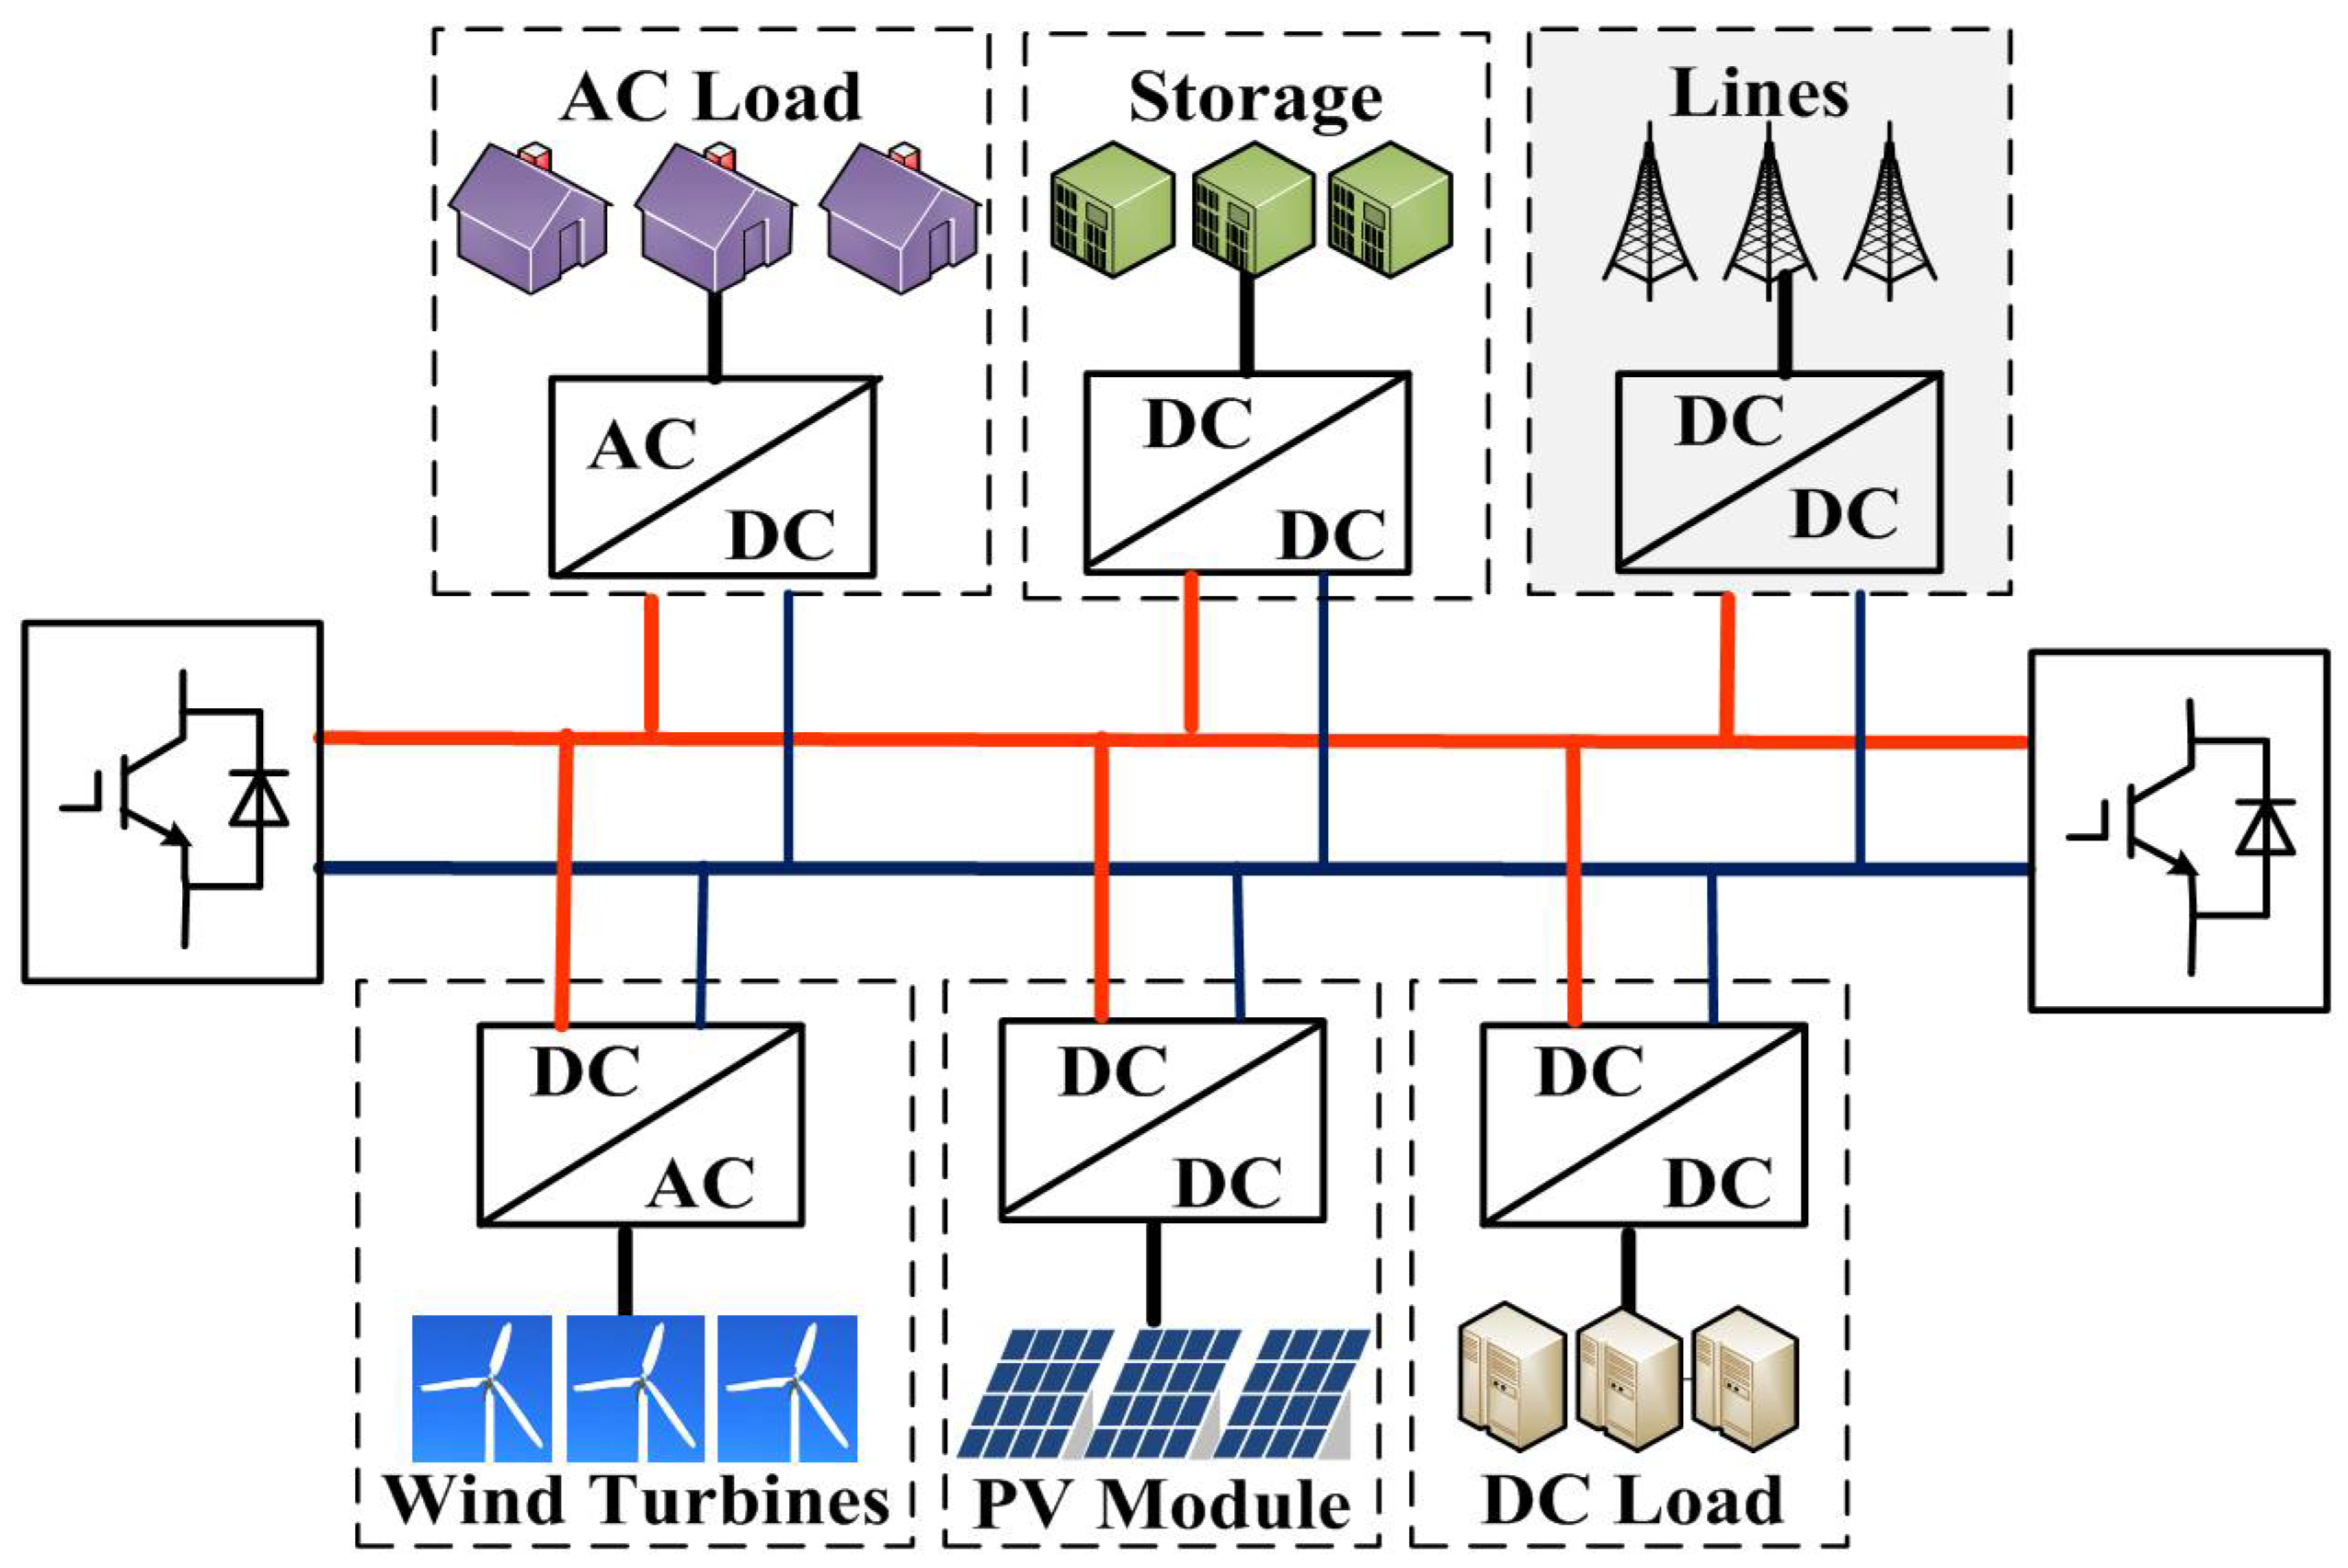 Energies Free Full Text Single Ended Protection Scheme For Vsc Alternate Positivevoltage Switching Regulator Circuit Diagram 11 01440 G001